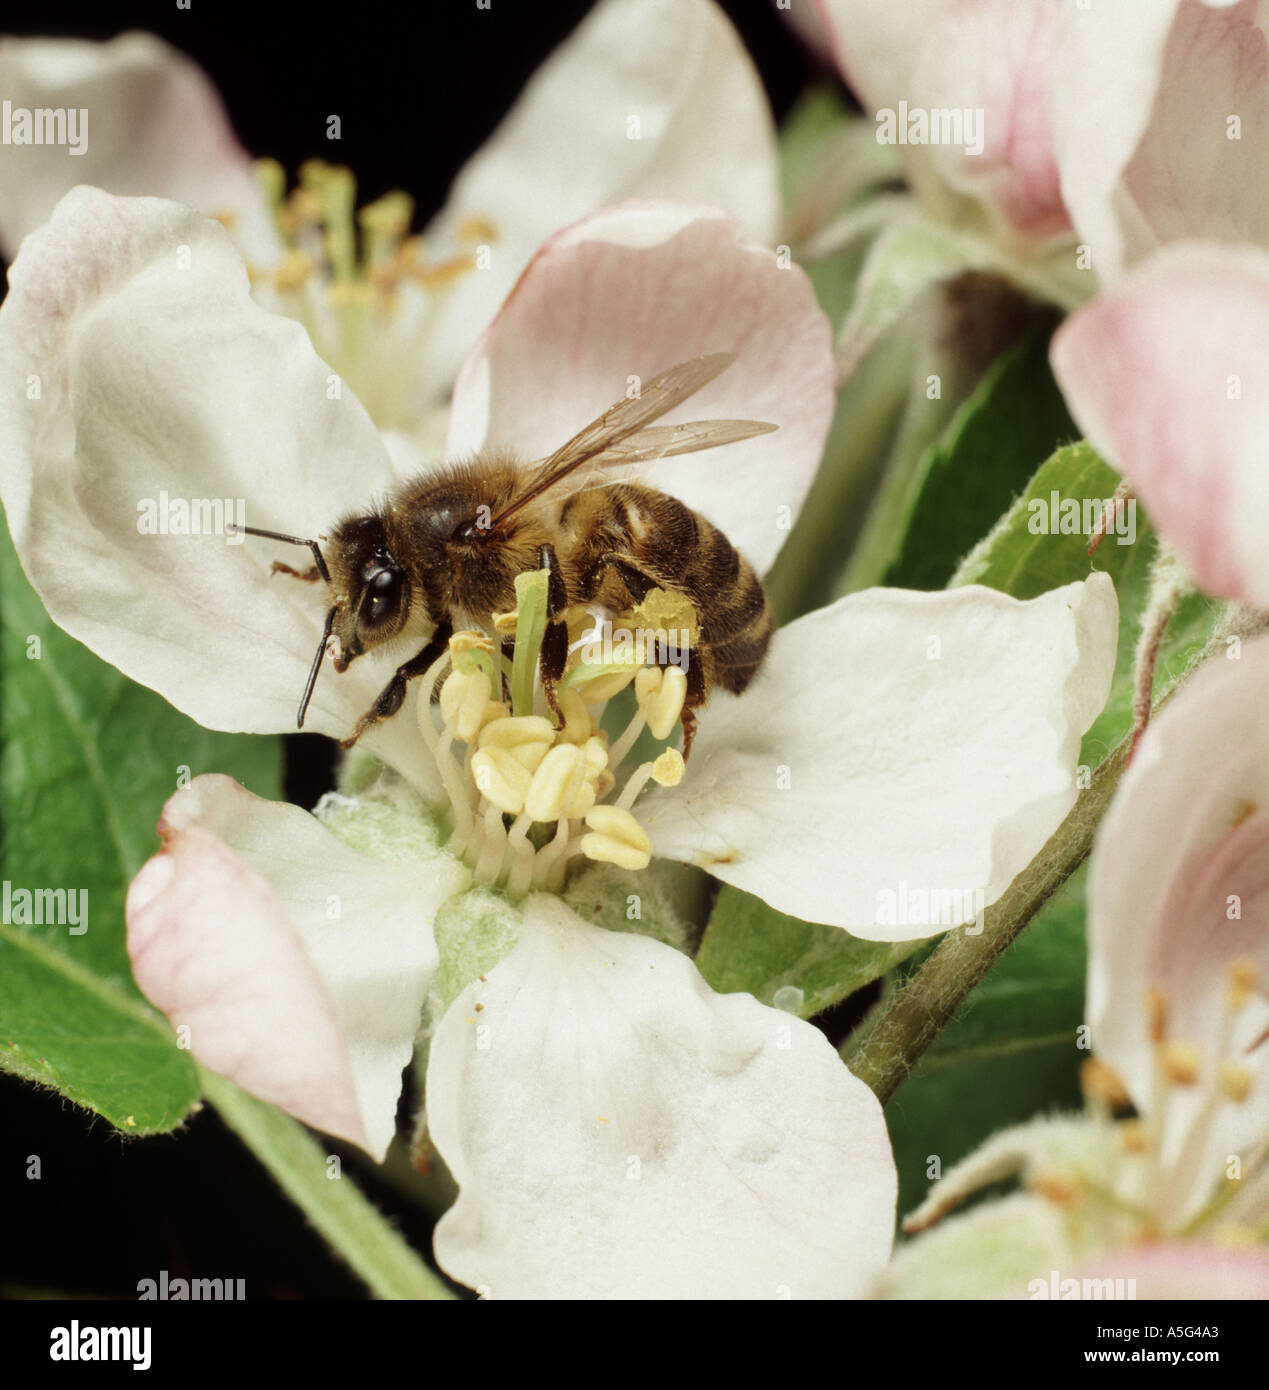 Honey bee Apis mellifera collecting pollen from an apple flower in spring - Stock Image